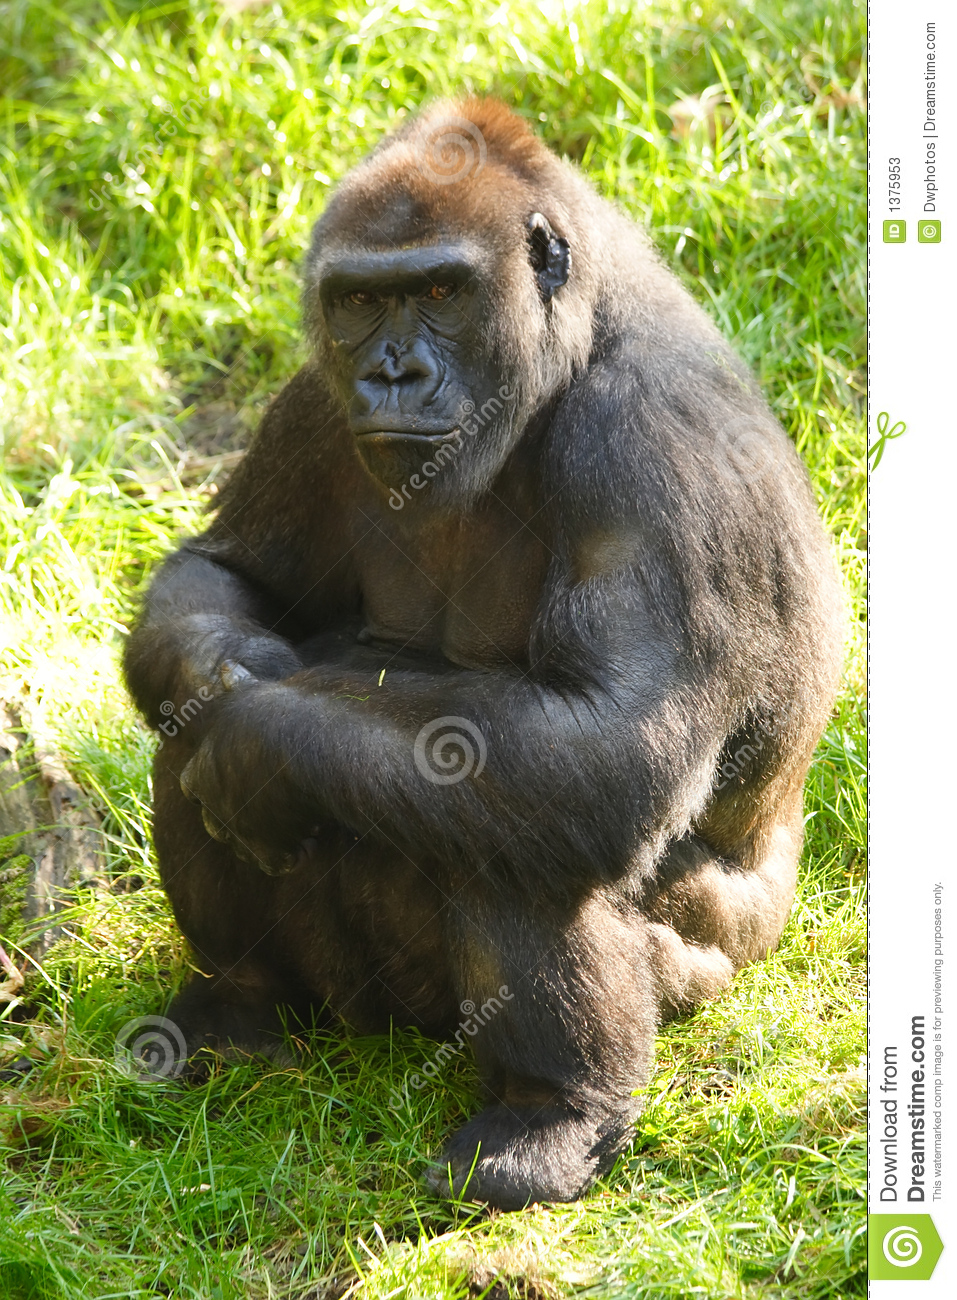 Female Gorilla Stock Photos - Image 1375953-9348